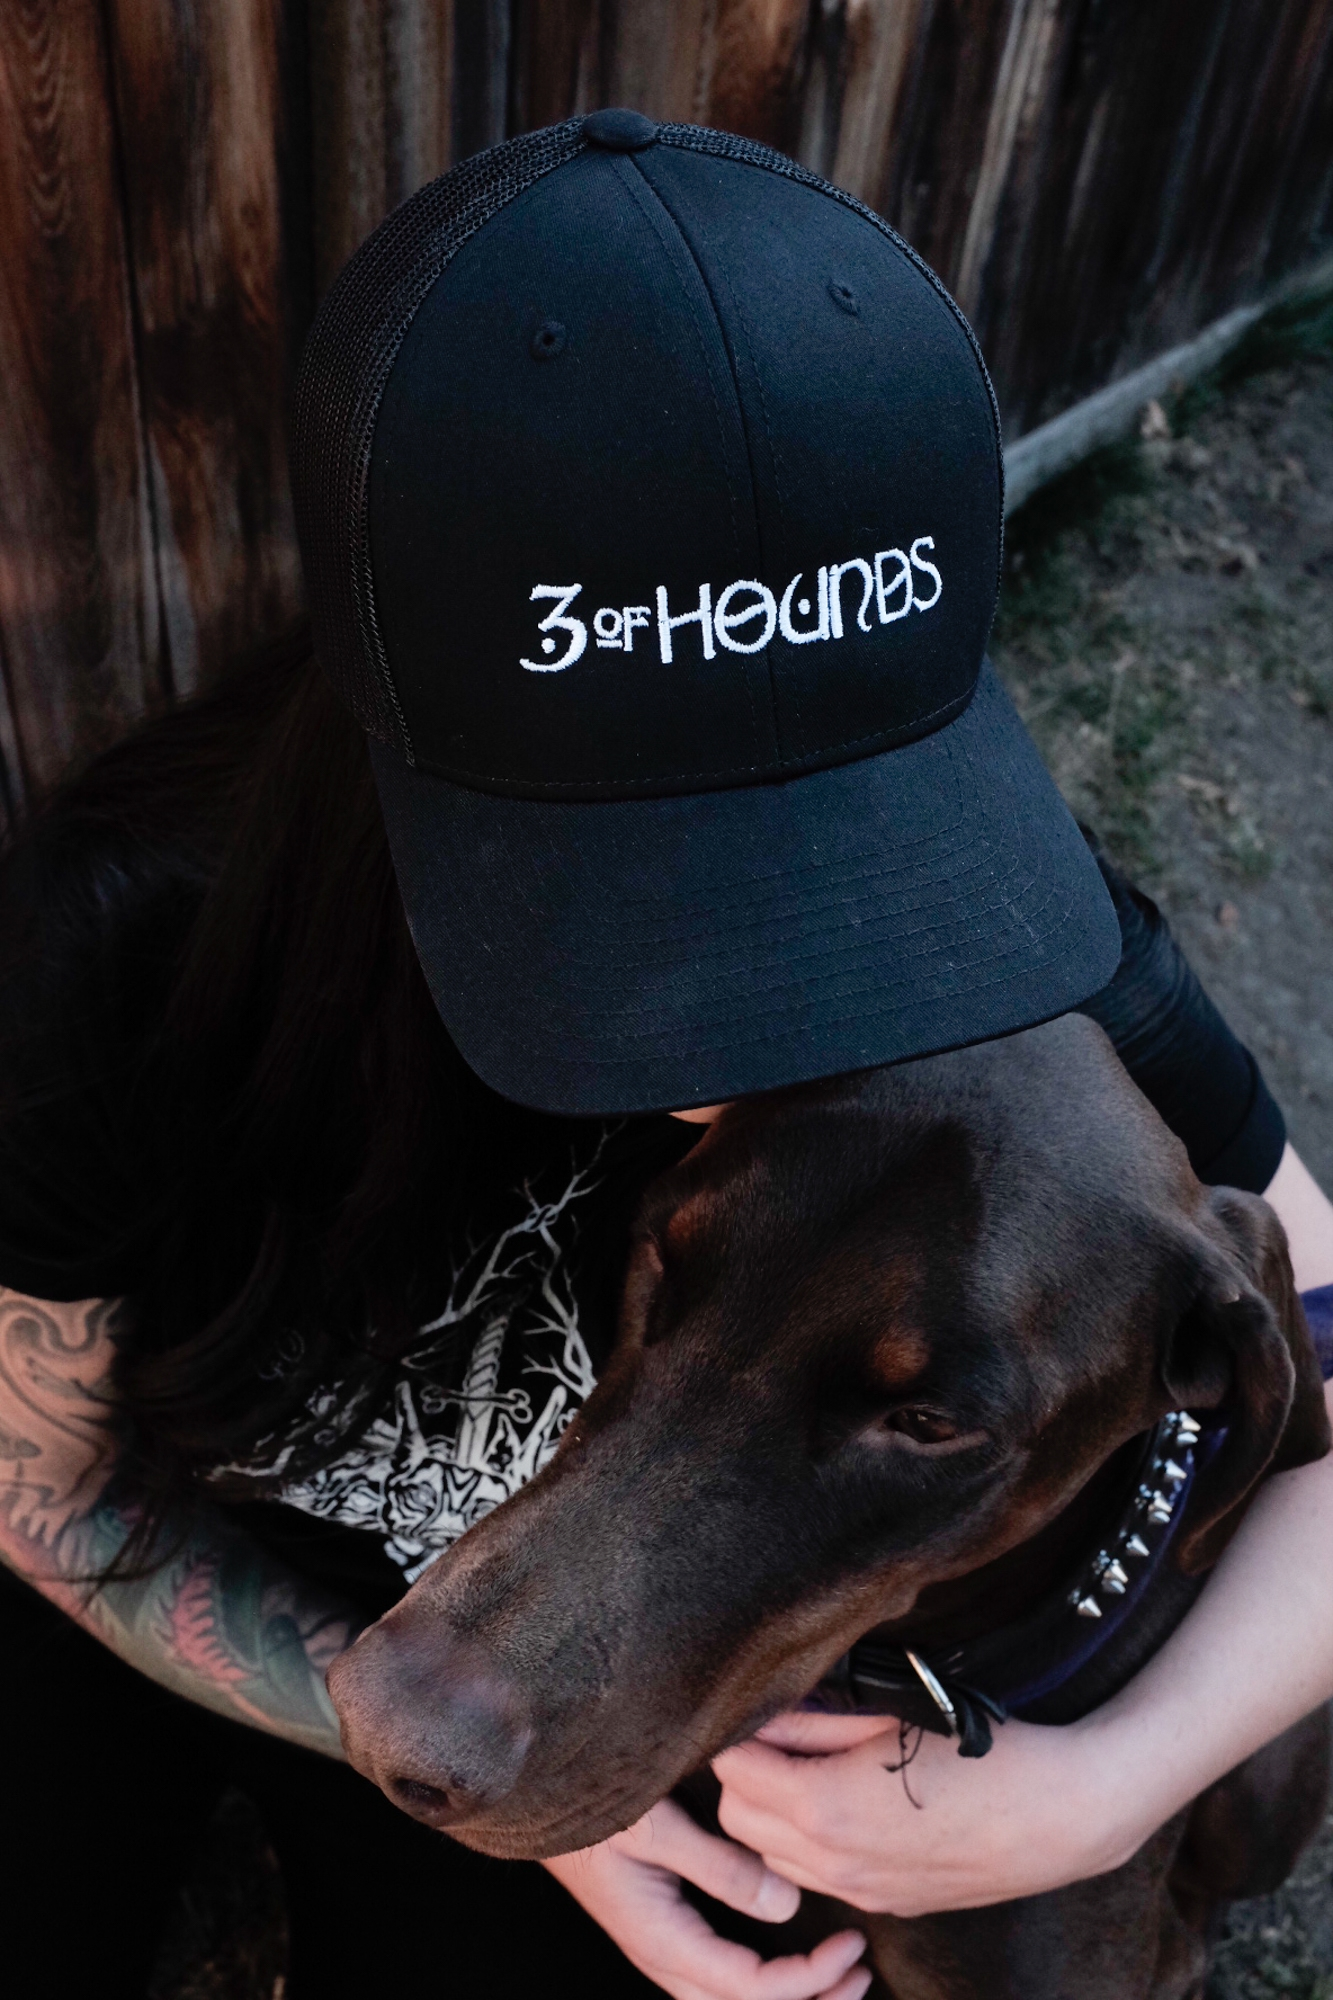 3 of hounds - merch photo